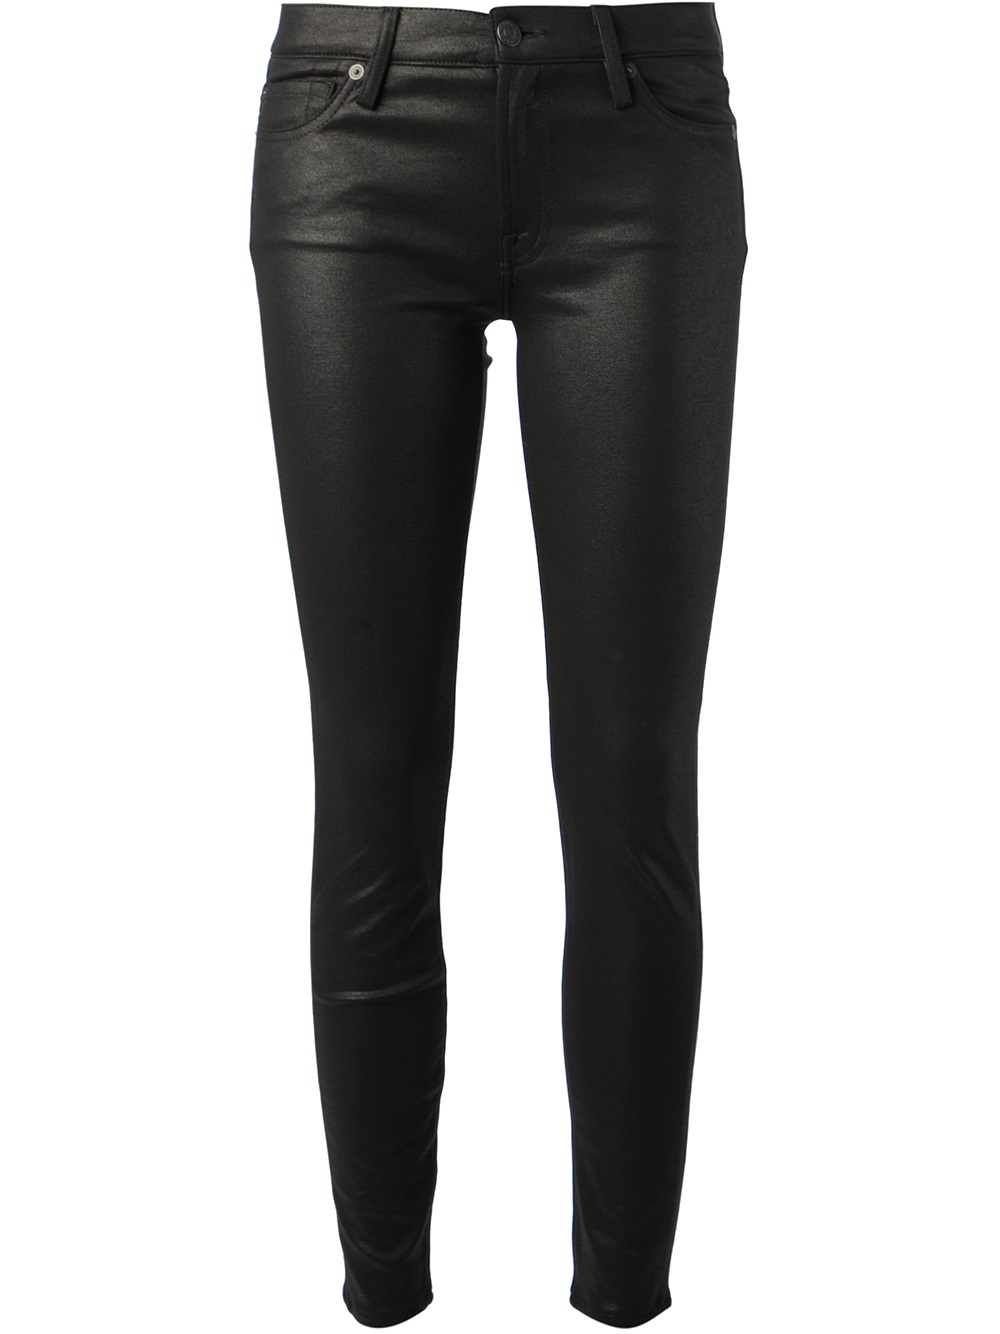 7 for all mankind Coated Skinny Jeans in Black | Lyst